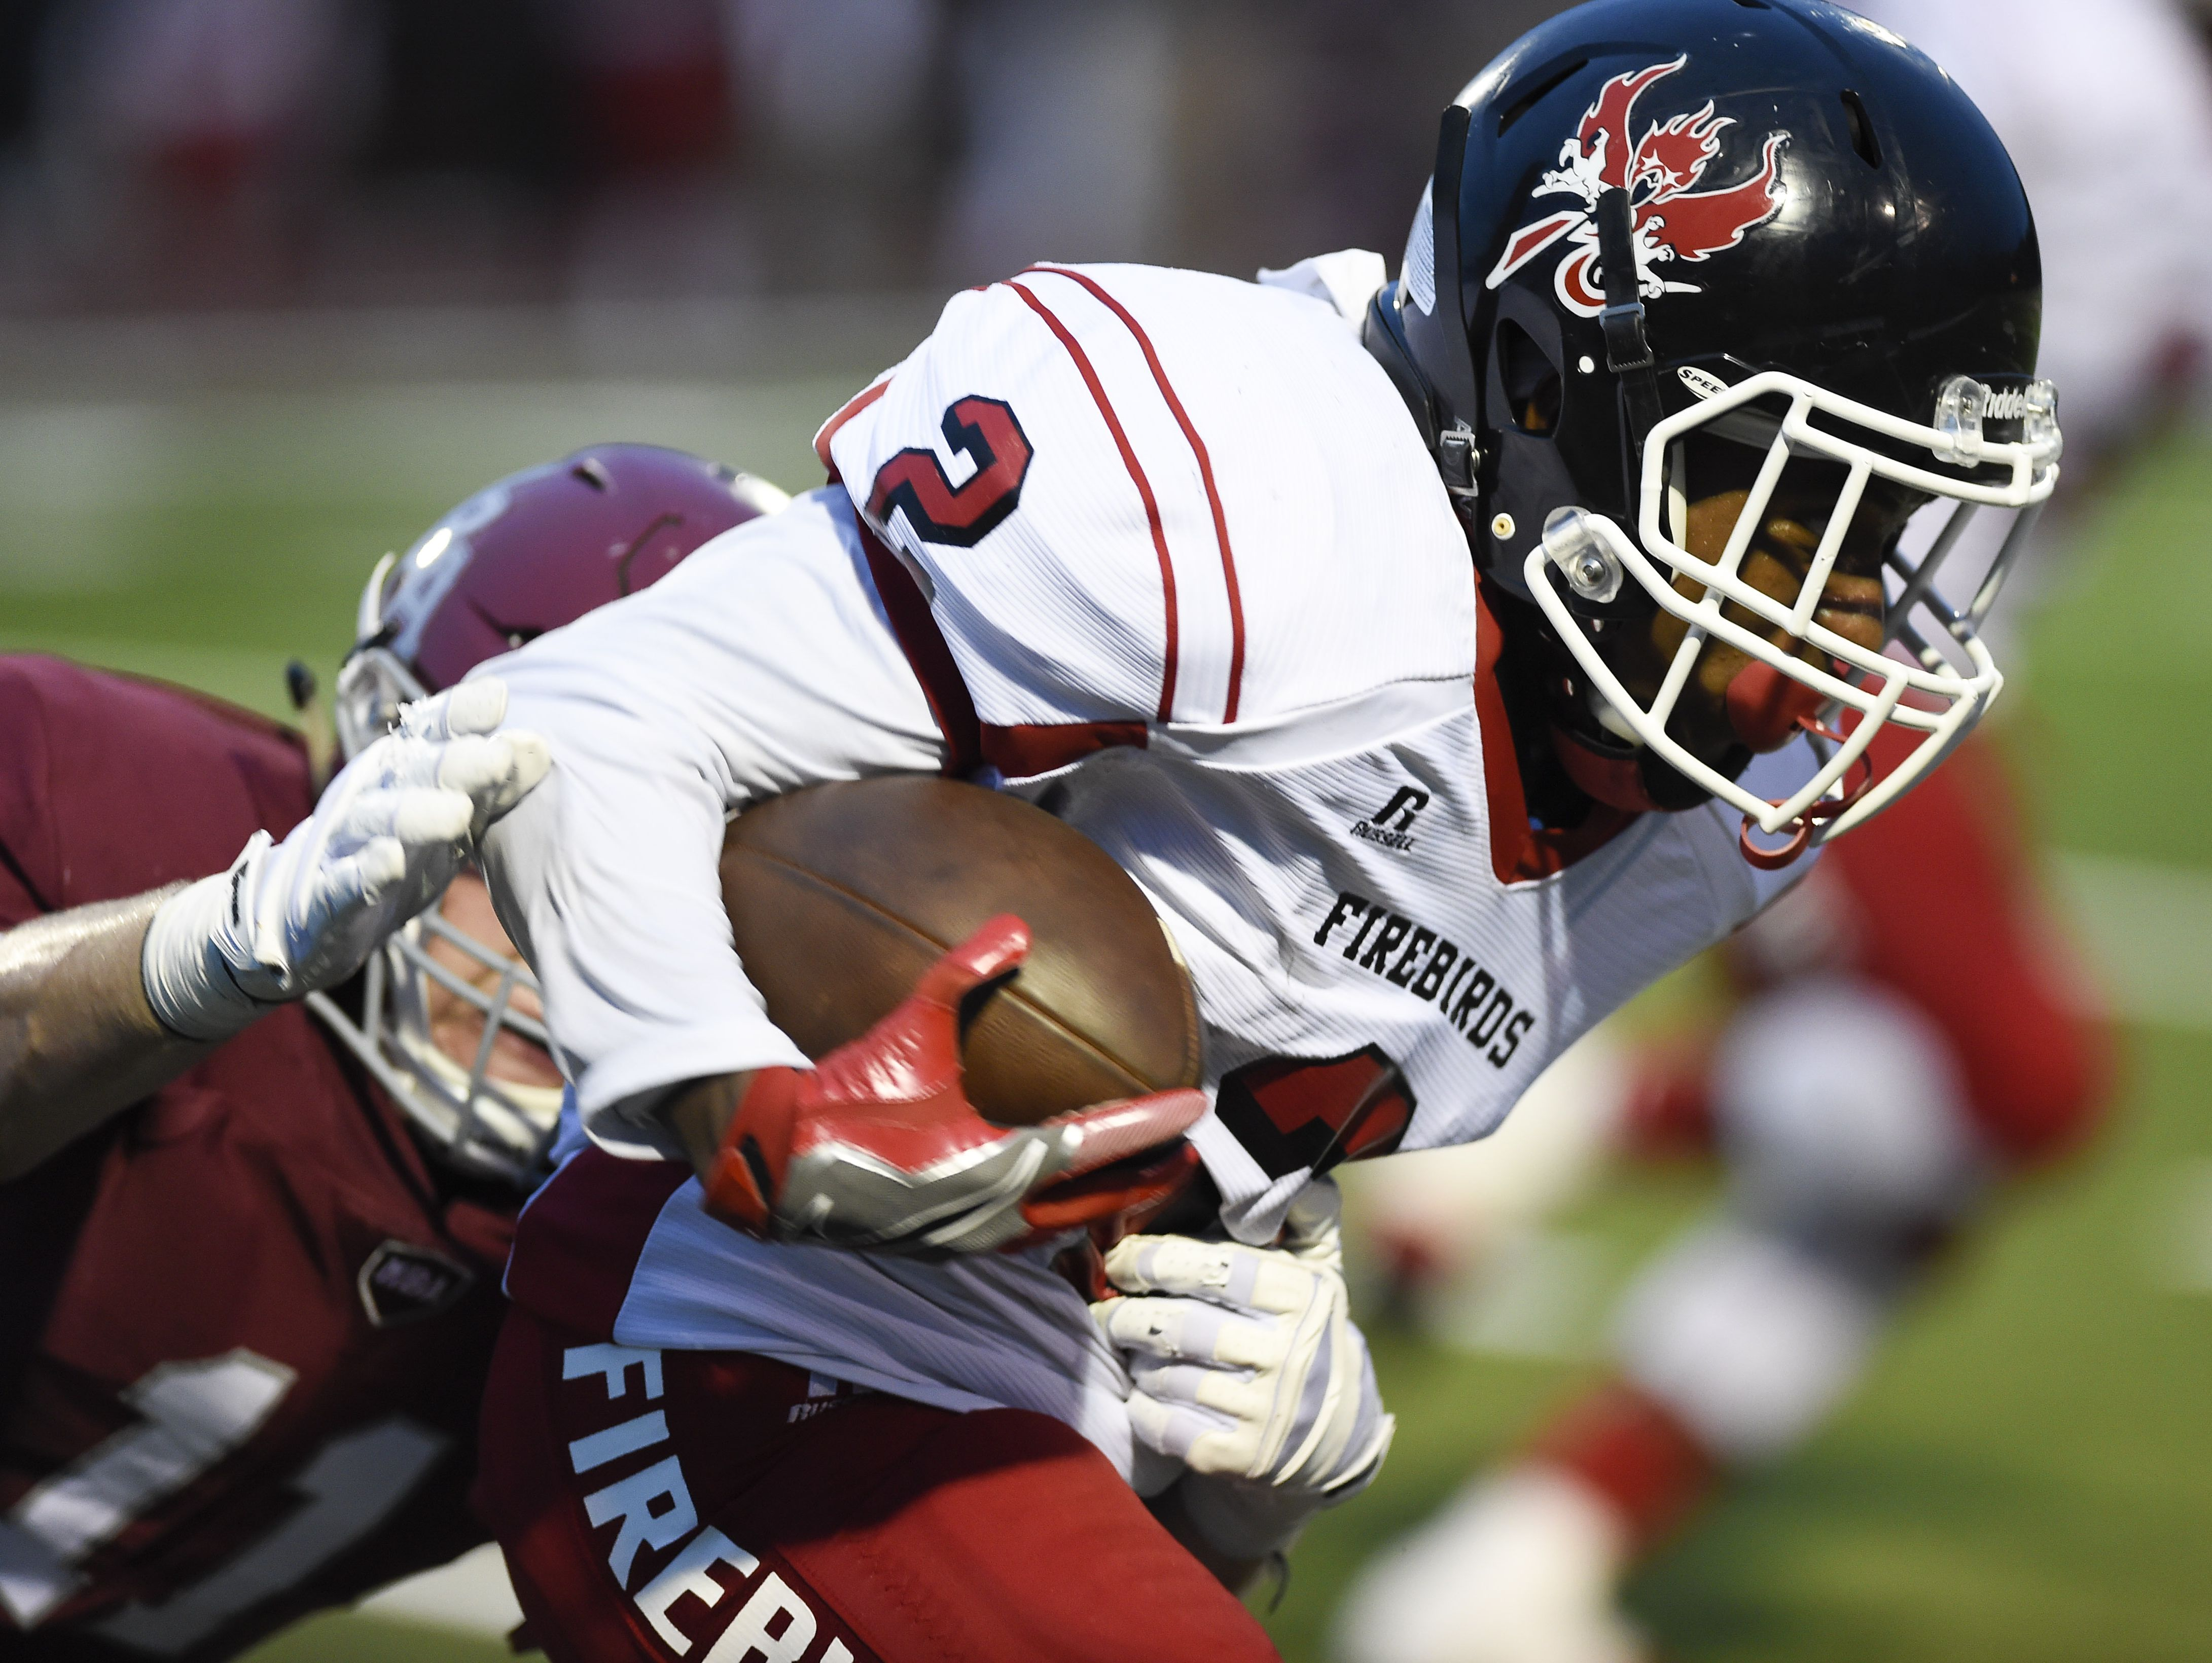 Pearl-Cohn running back Jimmyrious Parker (2) tries to get past MBA defensive back Gordon Pollock (11) during their game Friday Aug. 26, 2016, in Nashville, Tenn.